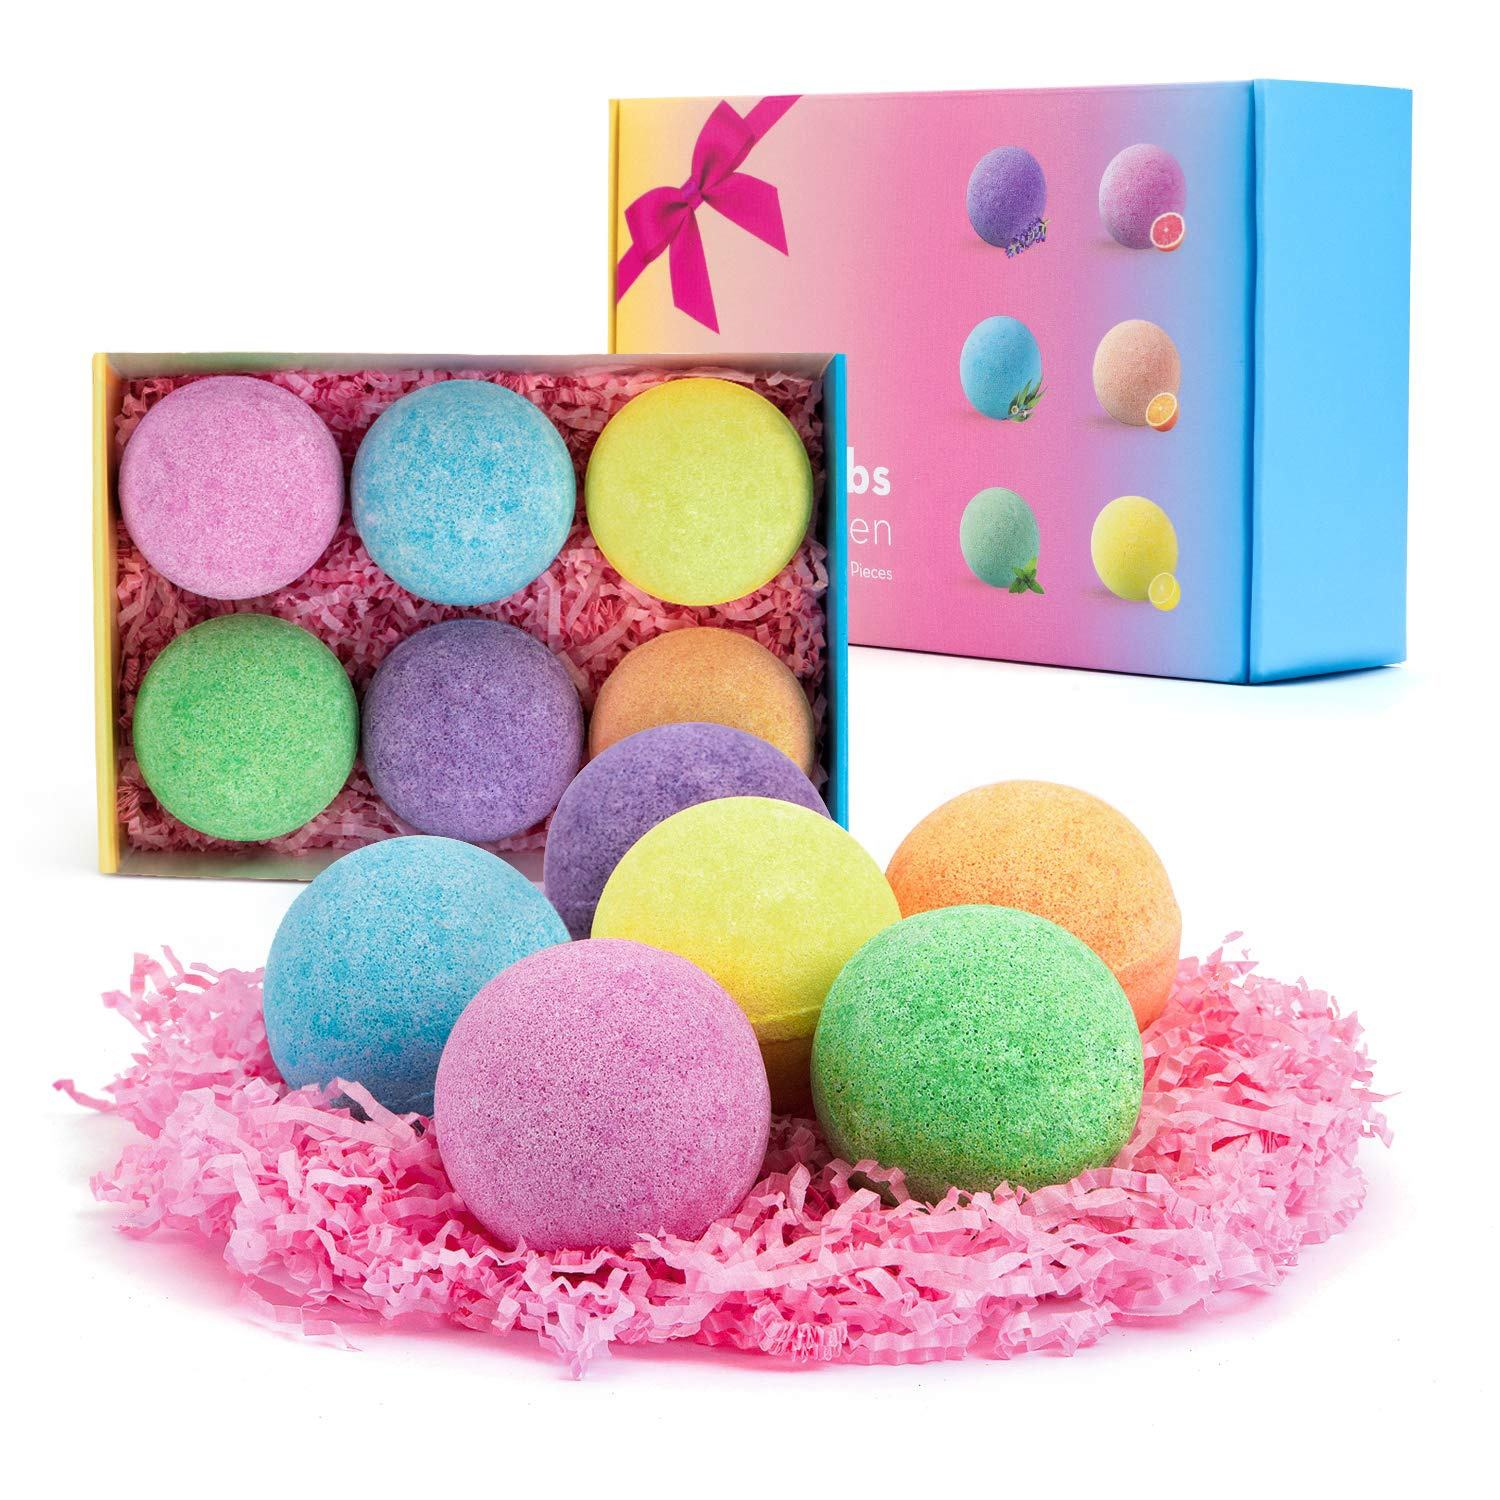 2021 New Arrival Private label Bath Bombs Packaging Natural Organic Herbal Bubble Bath Gift Set Scented Rainbow Bath Bombs